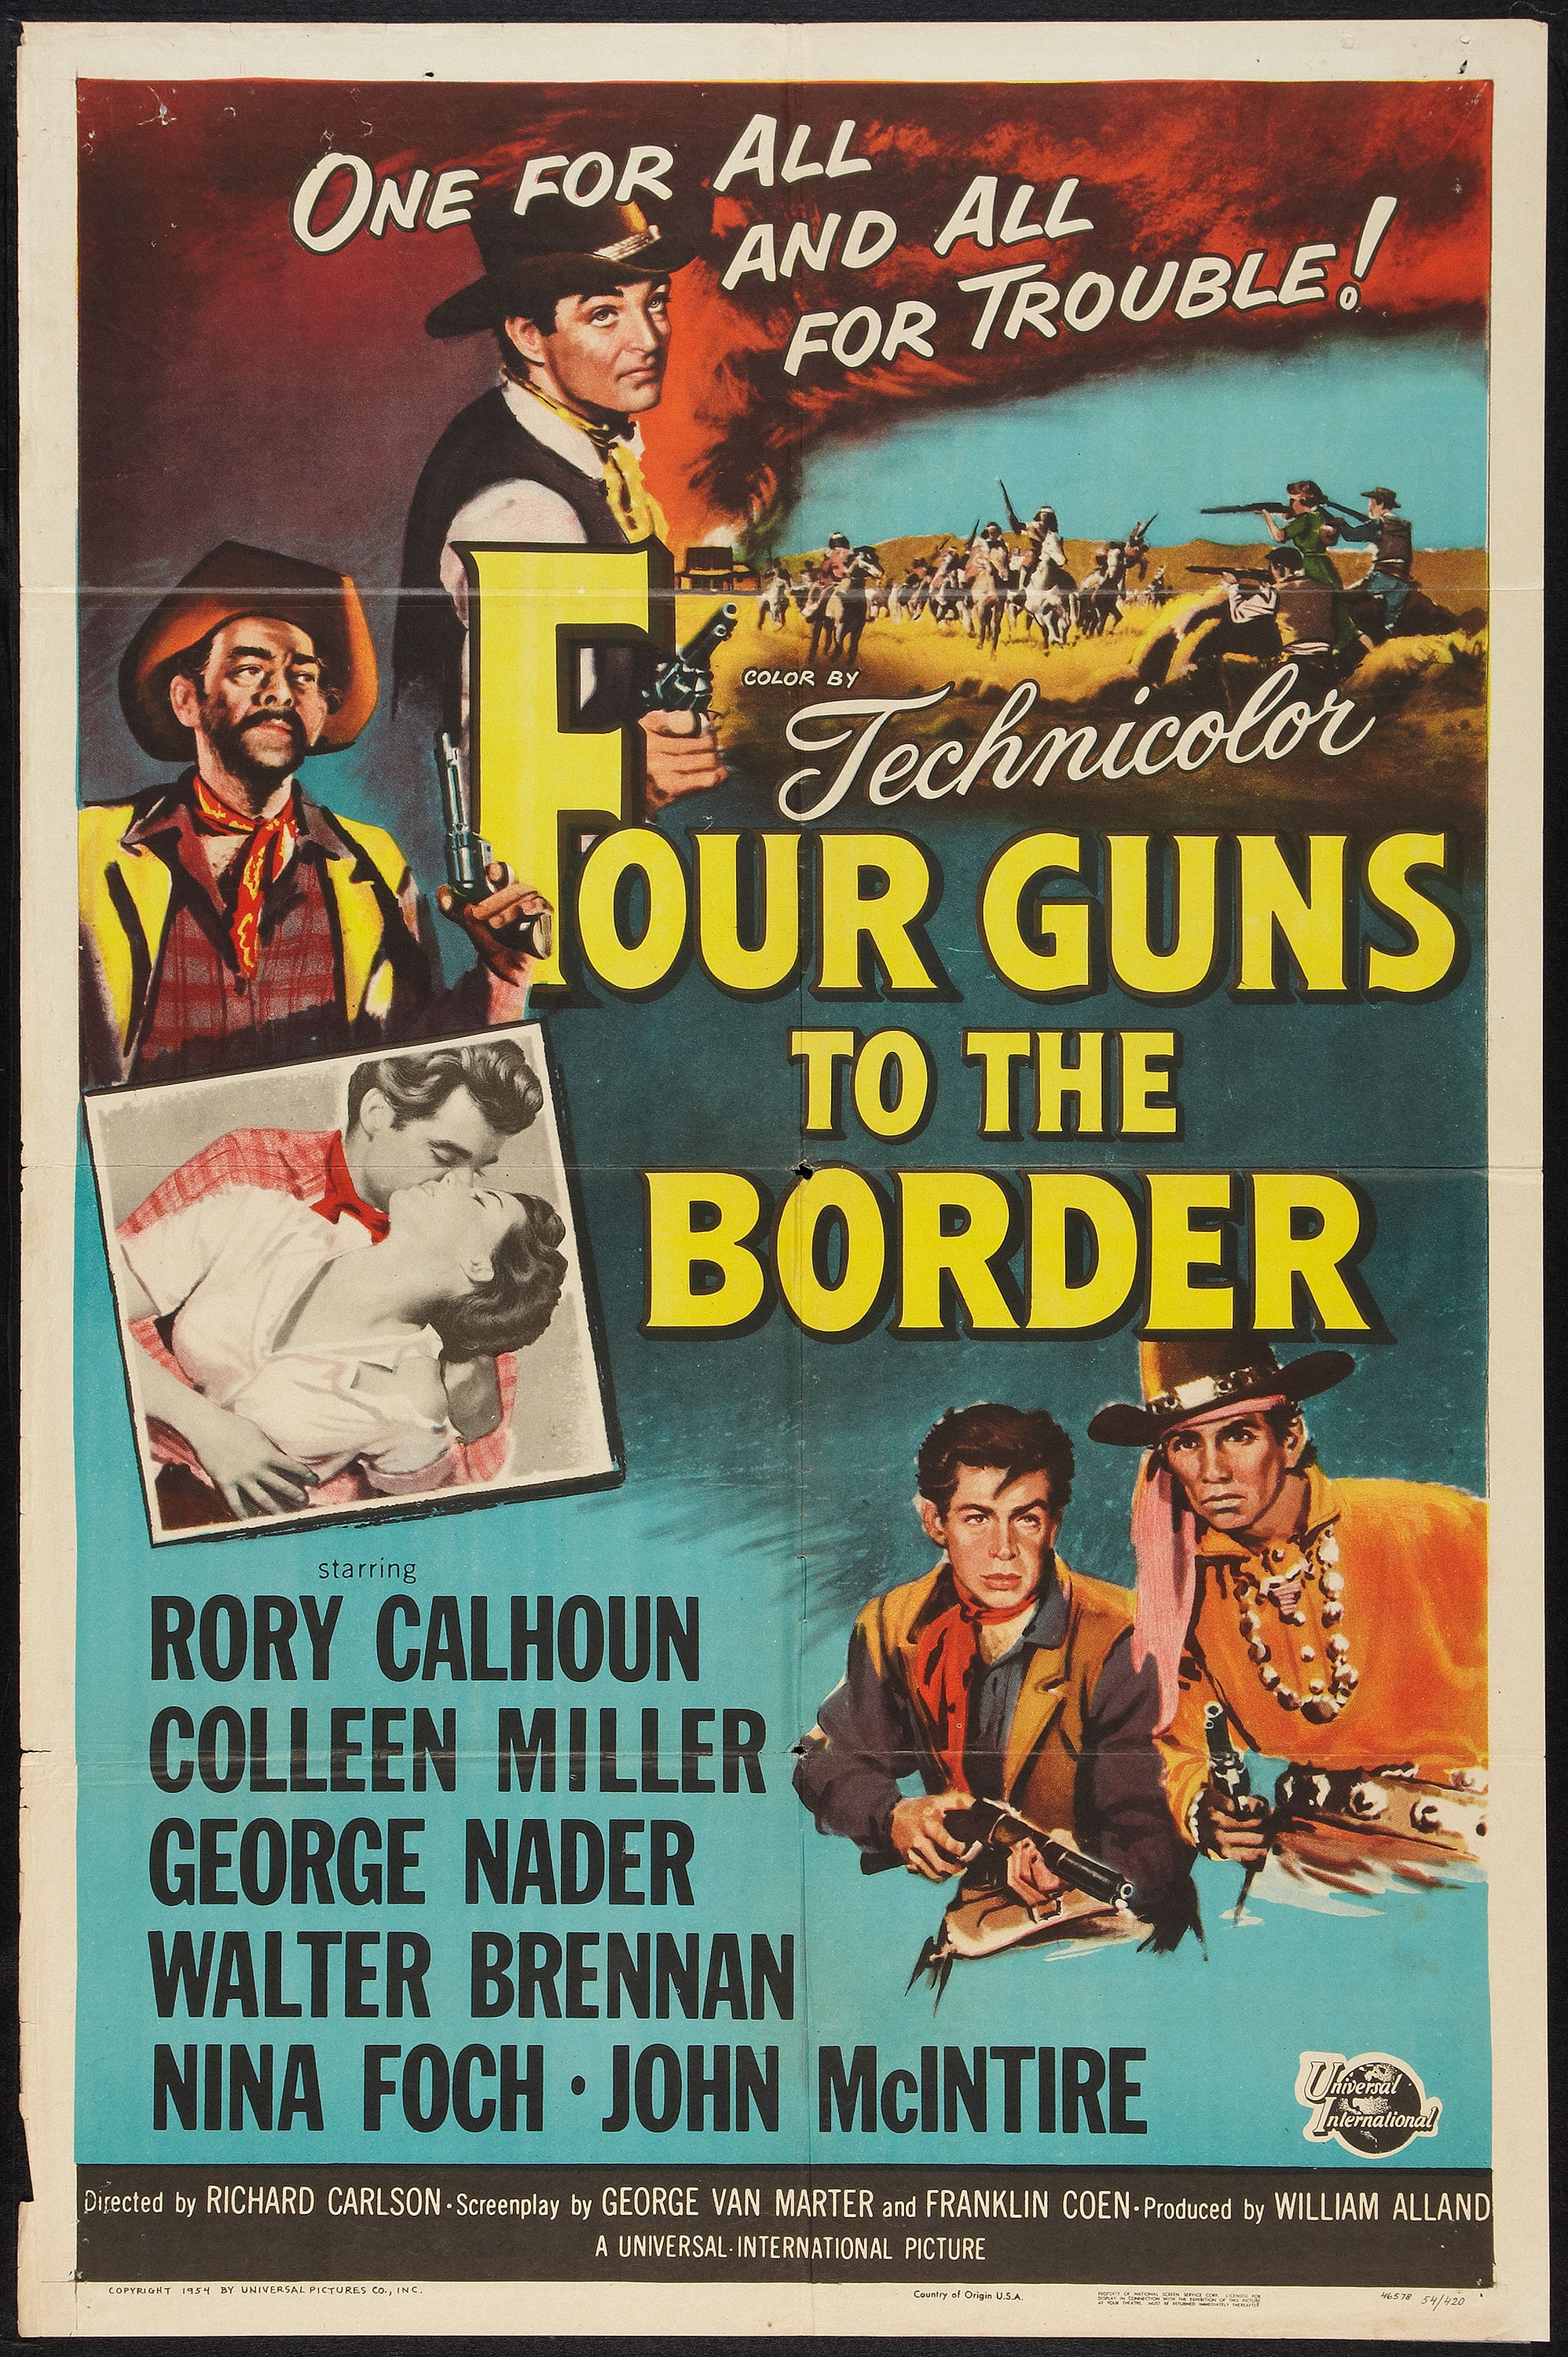 louis l amour archives great western movies 4gunsborderposter 4gunsbordertall